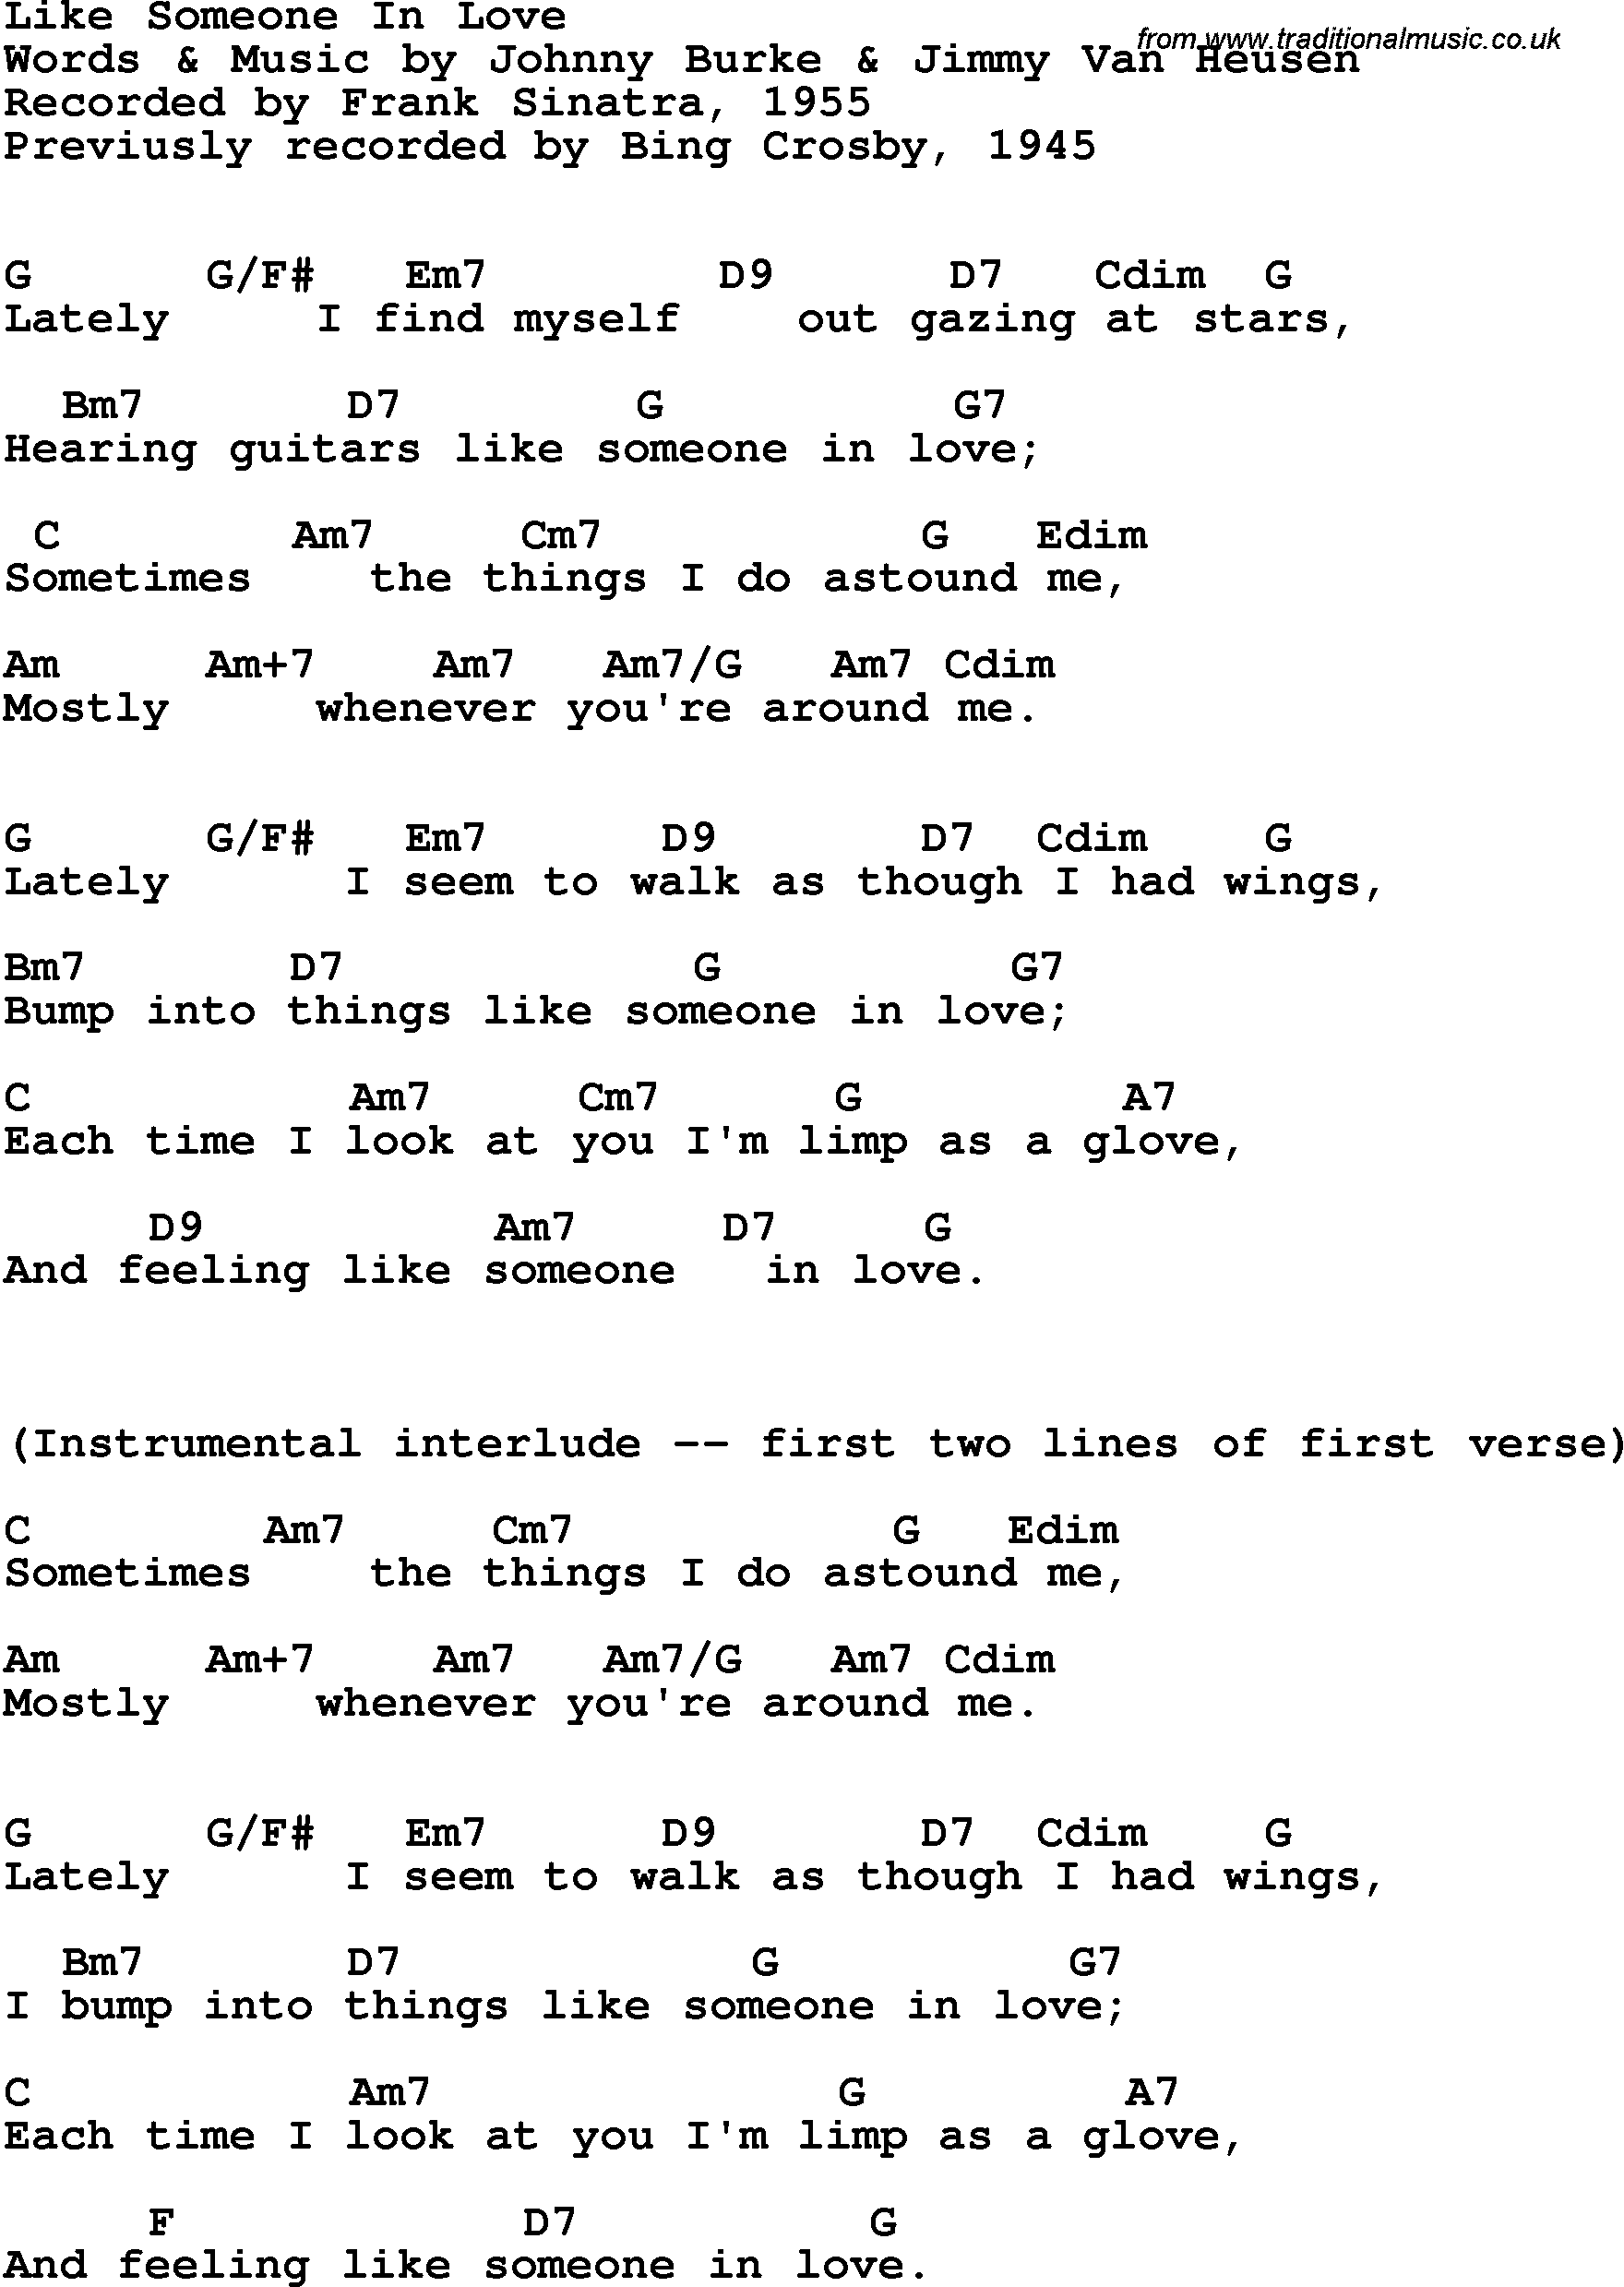 Song Lyrics With Guitar Chords For Like Someone In Love